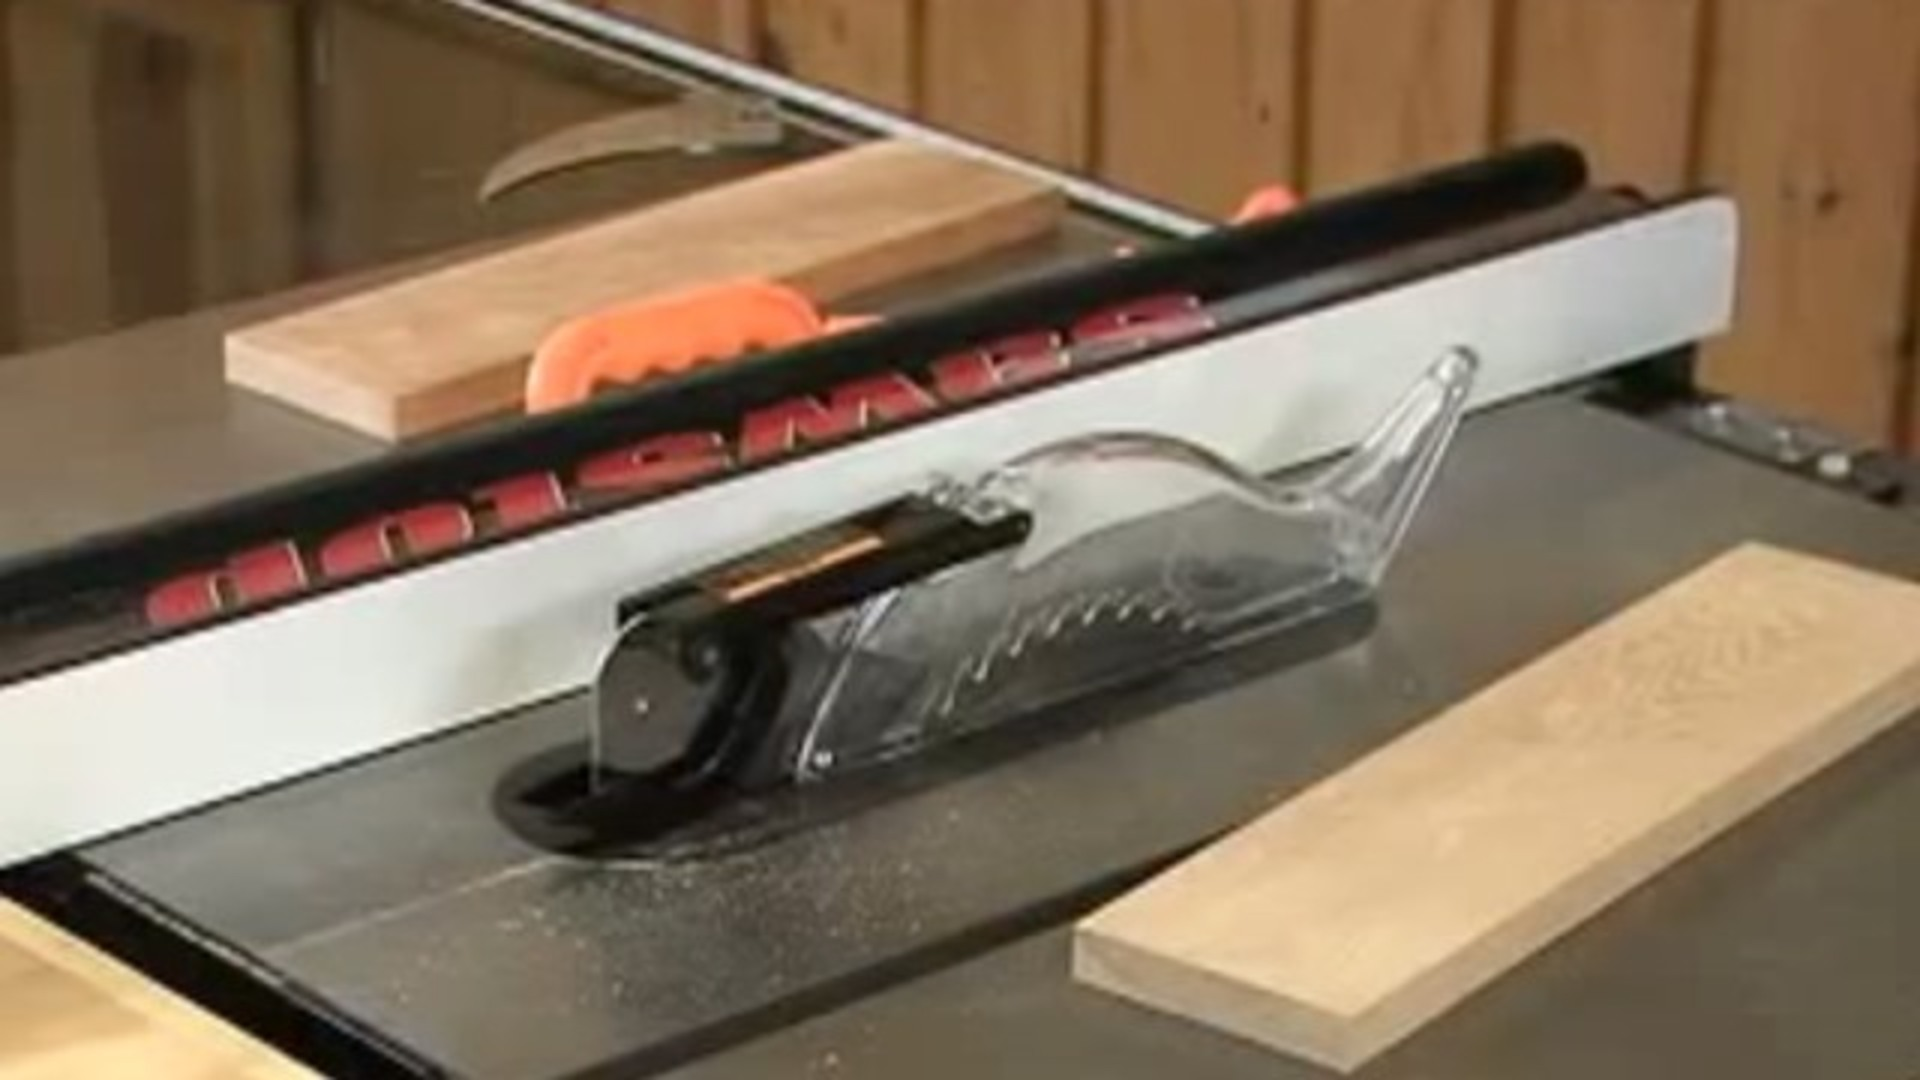 Sharpen Your Skills - Table Saw Safety Tips